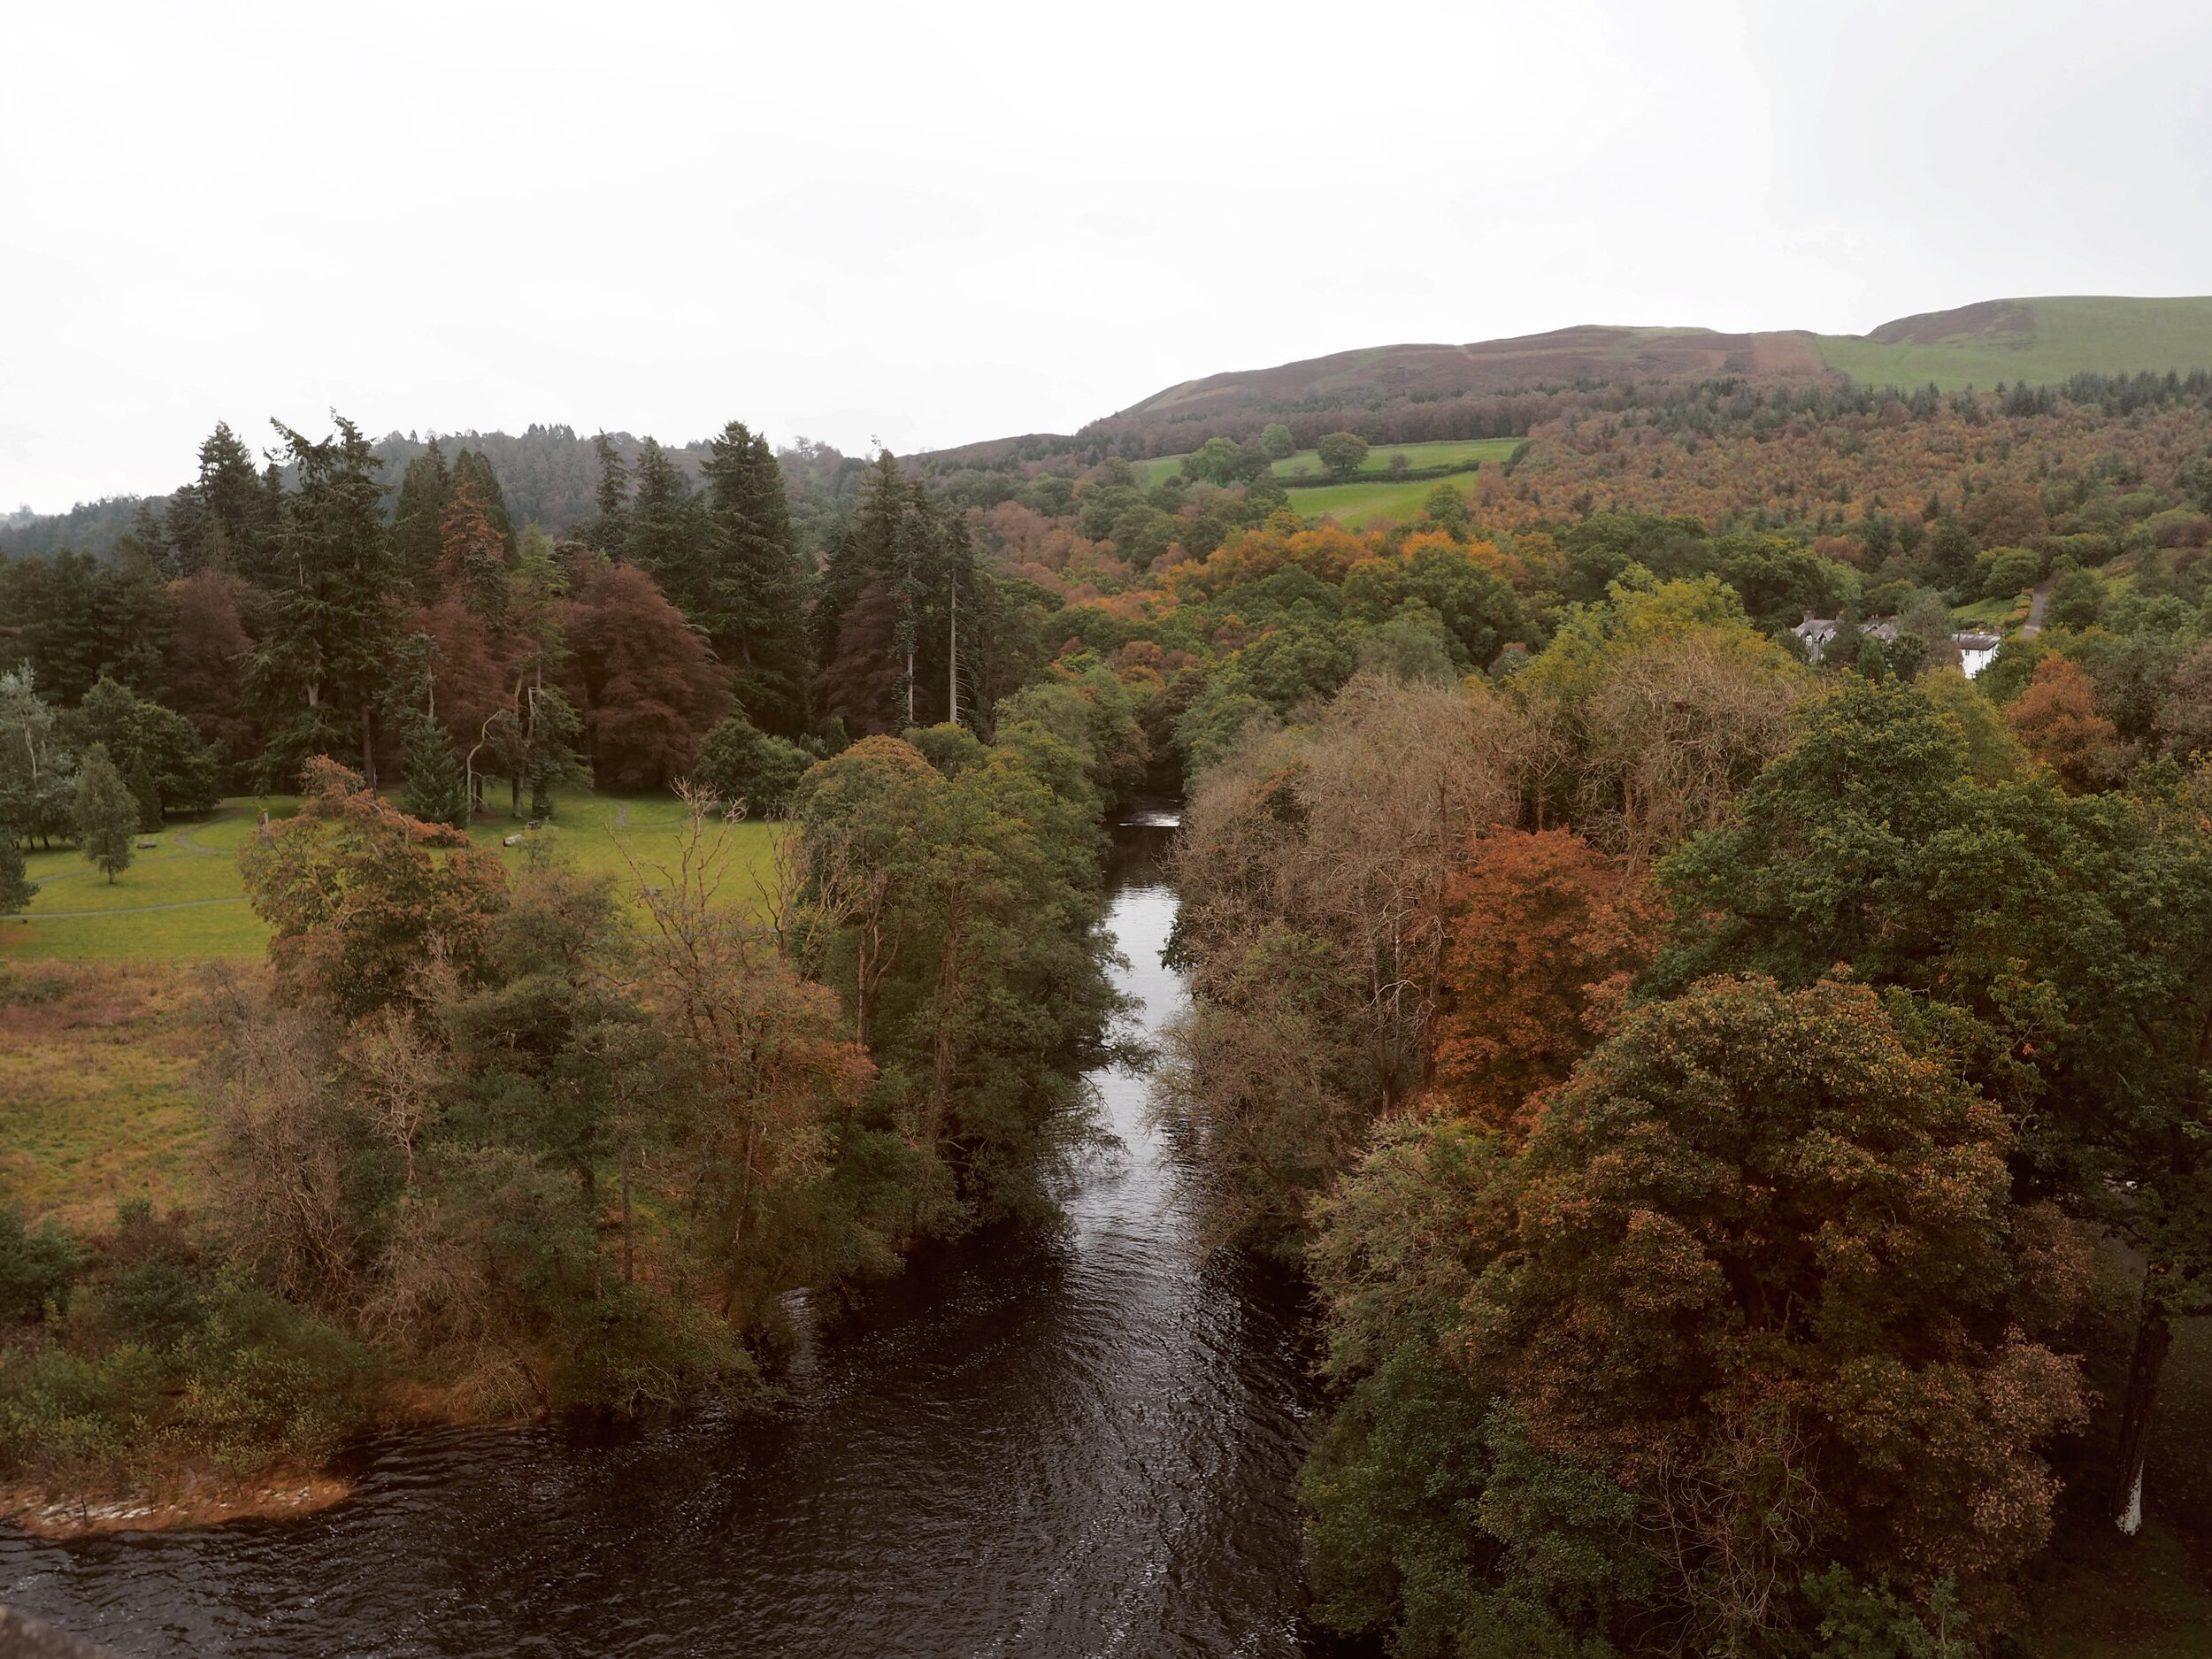 - We headed into Wales, to the edge of Snowdonia, to a place we had been wanting to explore for a while. Lake Vyrnwy is a 24,000 acre RSPB sanctuary with a stunning lake, large man-made dam and plenty of woodland walks.